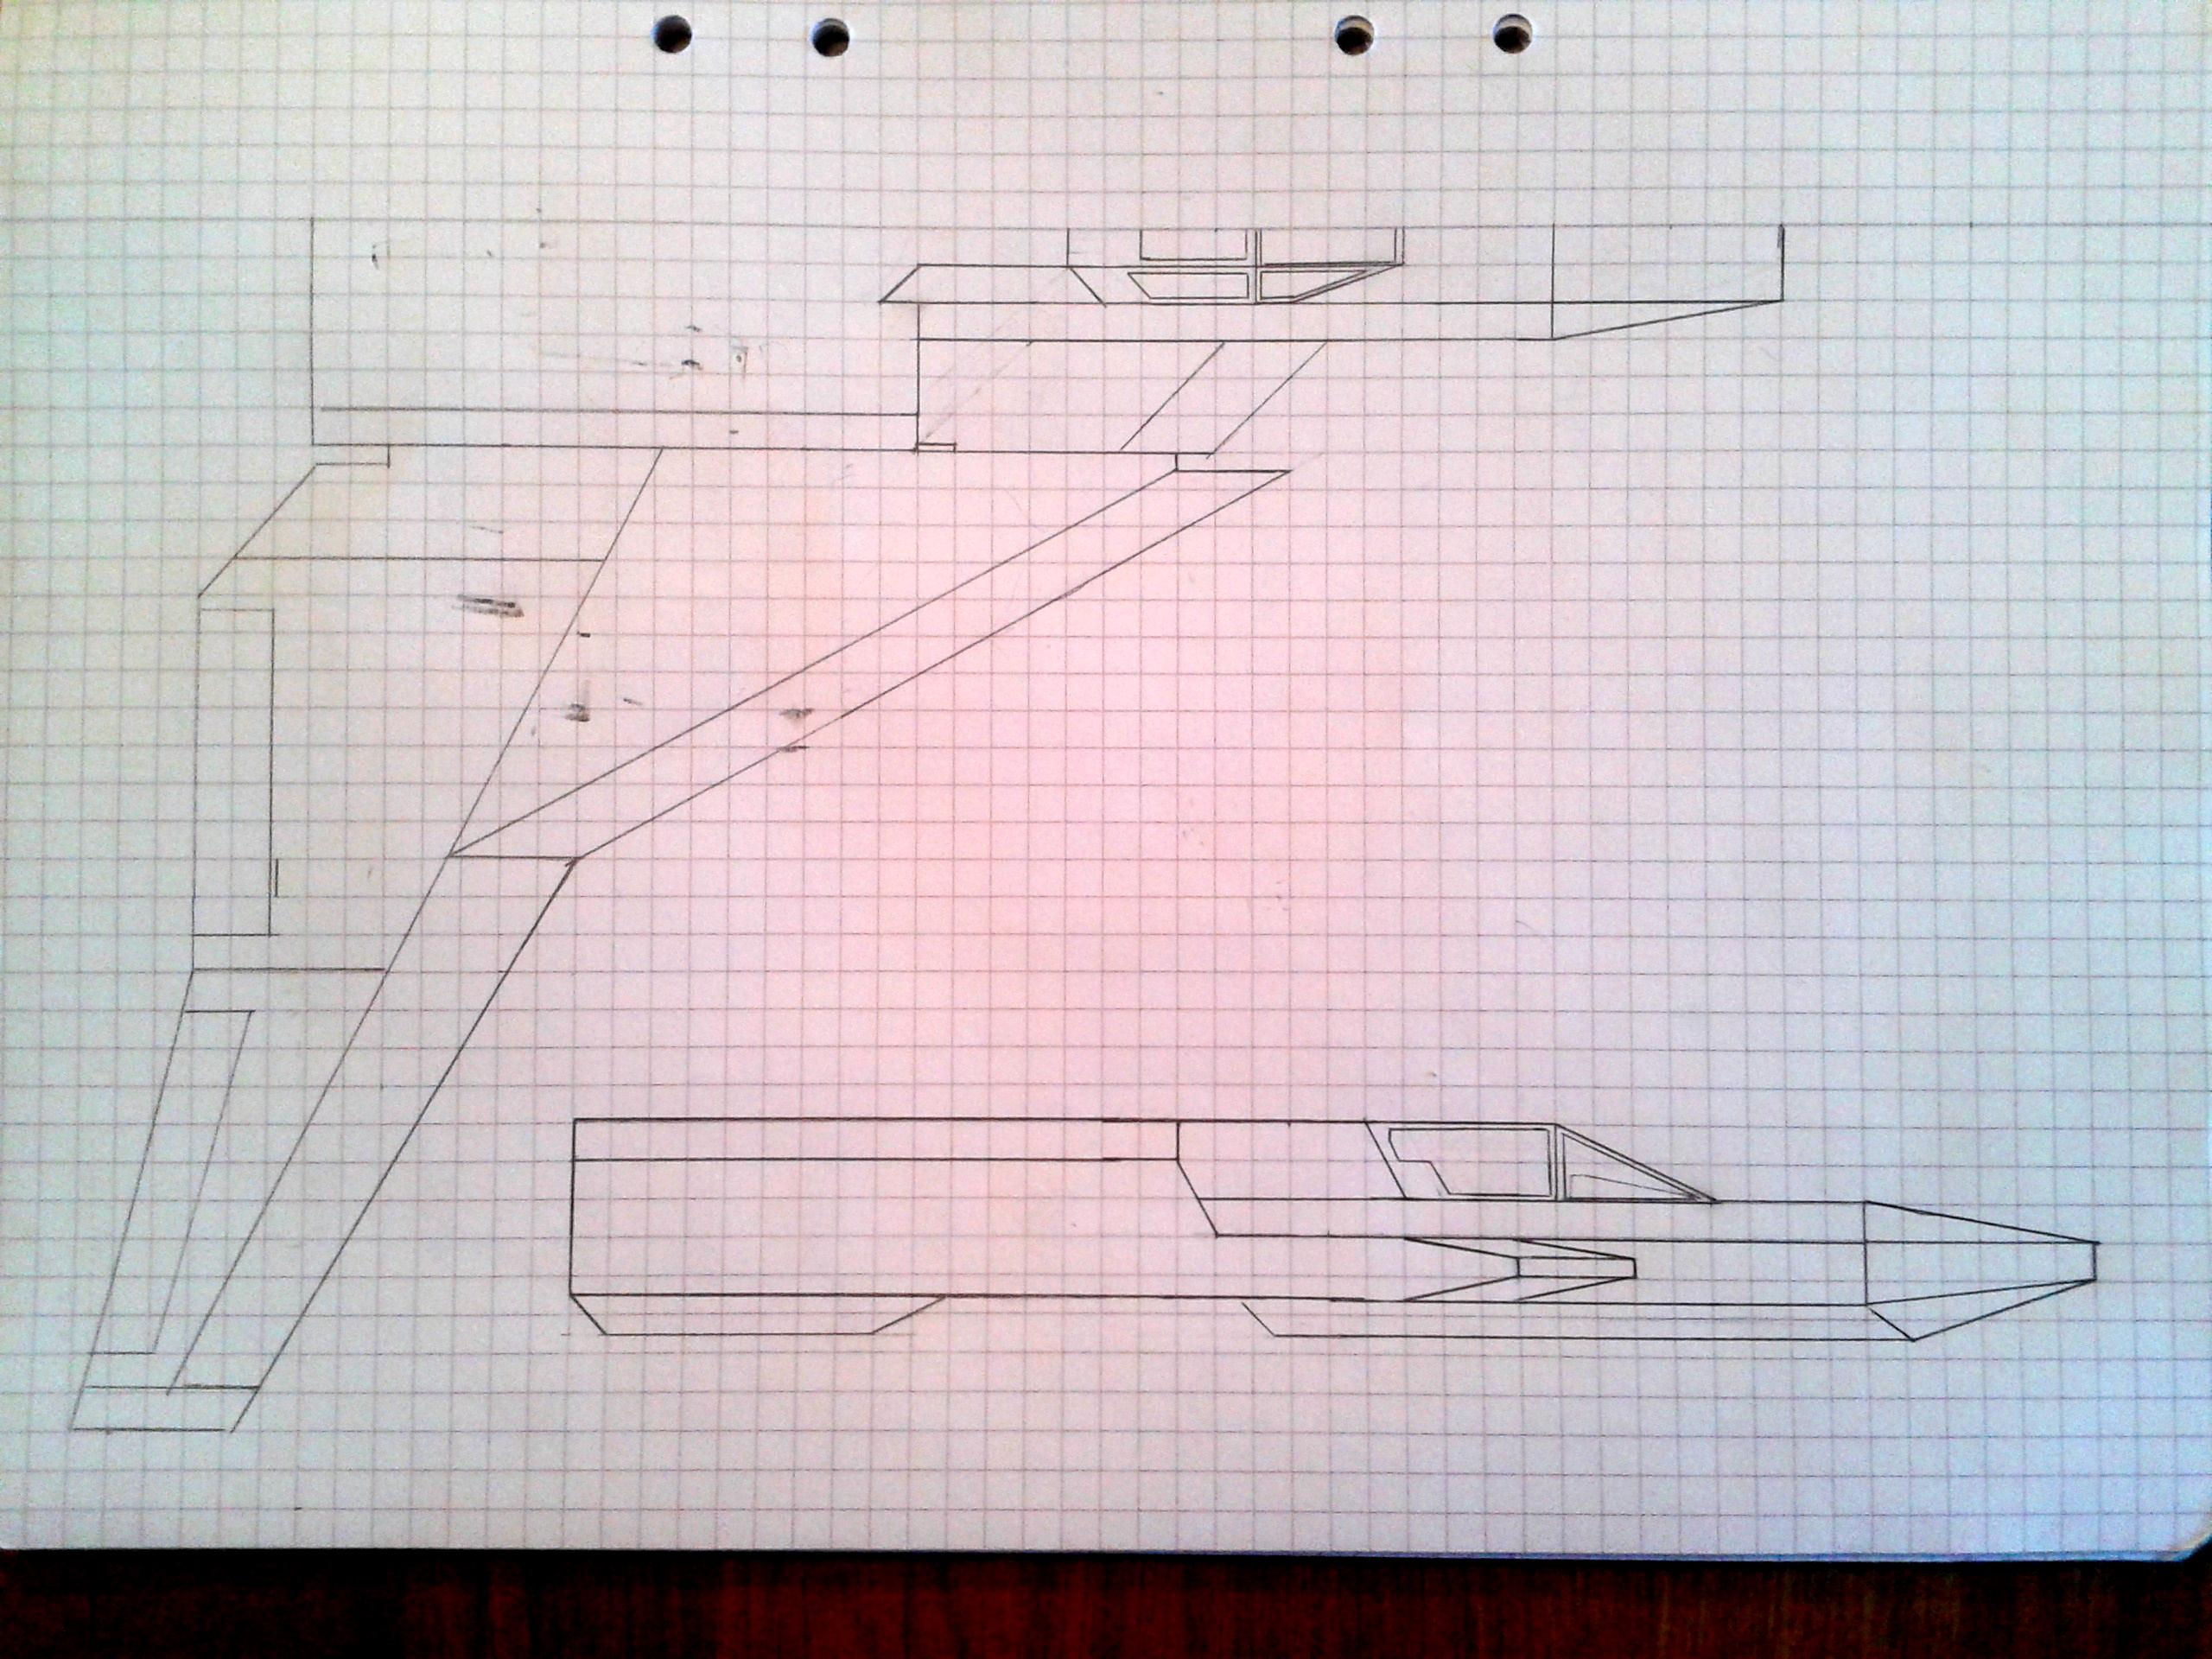 Overview drawing